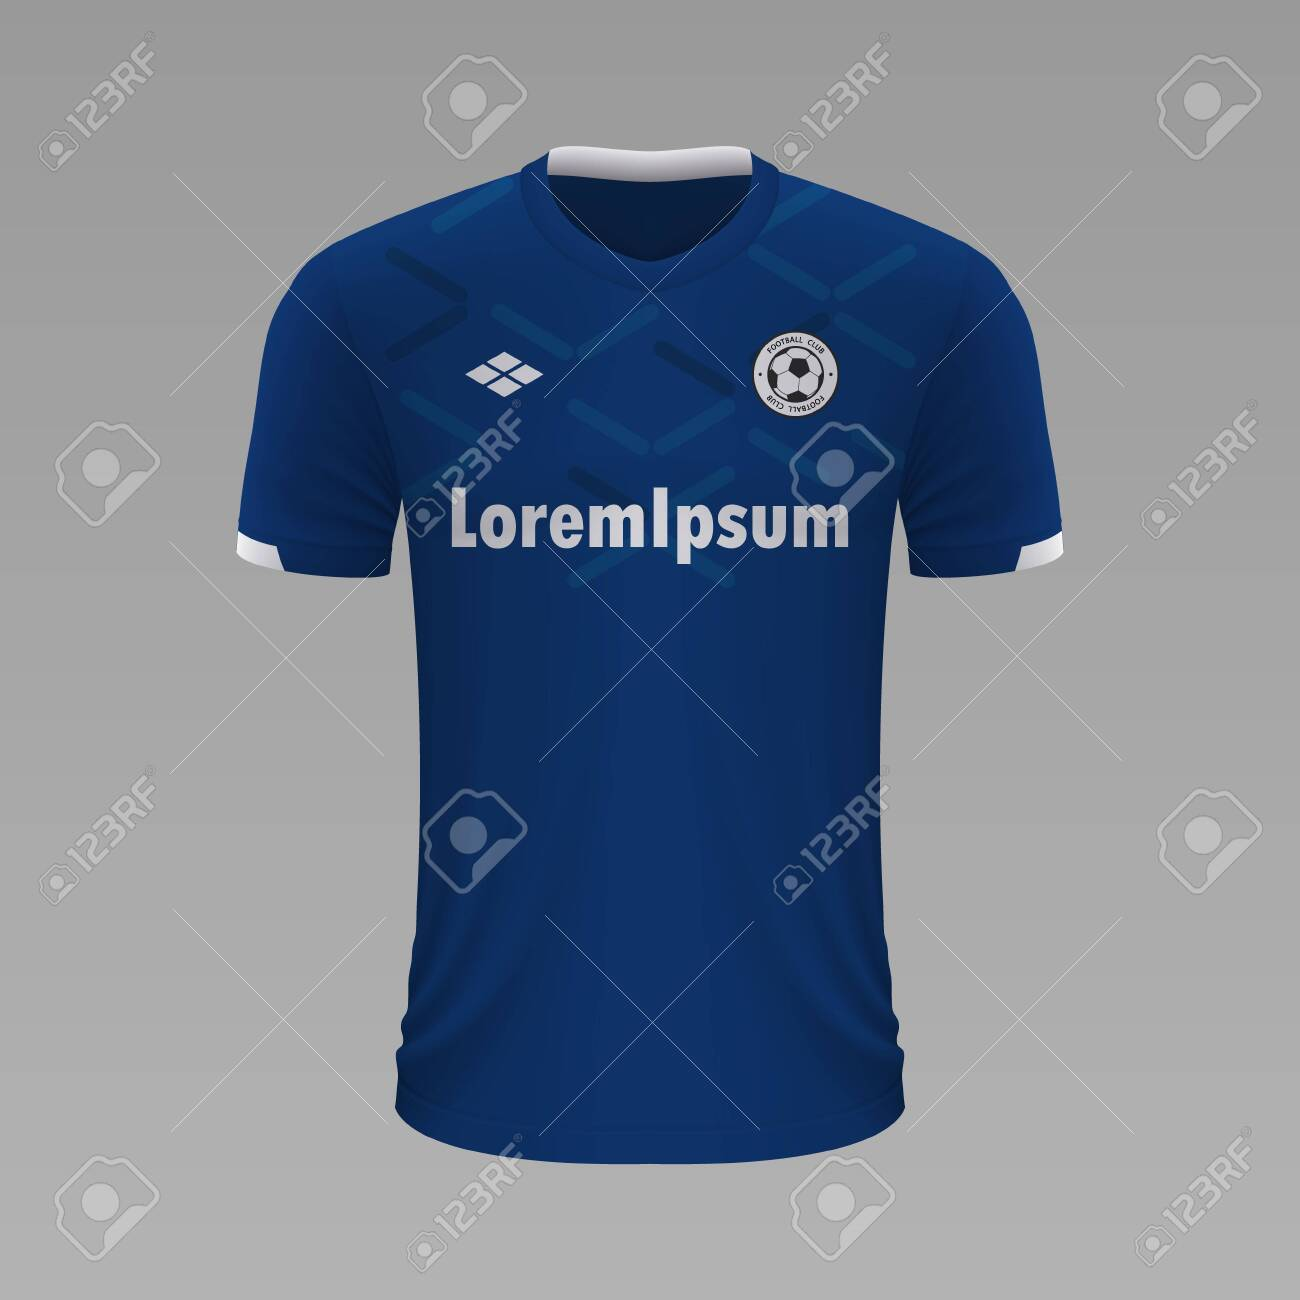 Realistic Soccer Shirt Everton 2020 Jersey Template For Football Royalty Free Cliparts Vectors And Stock Illustration Image 129450947